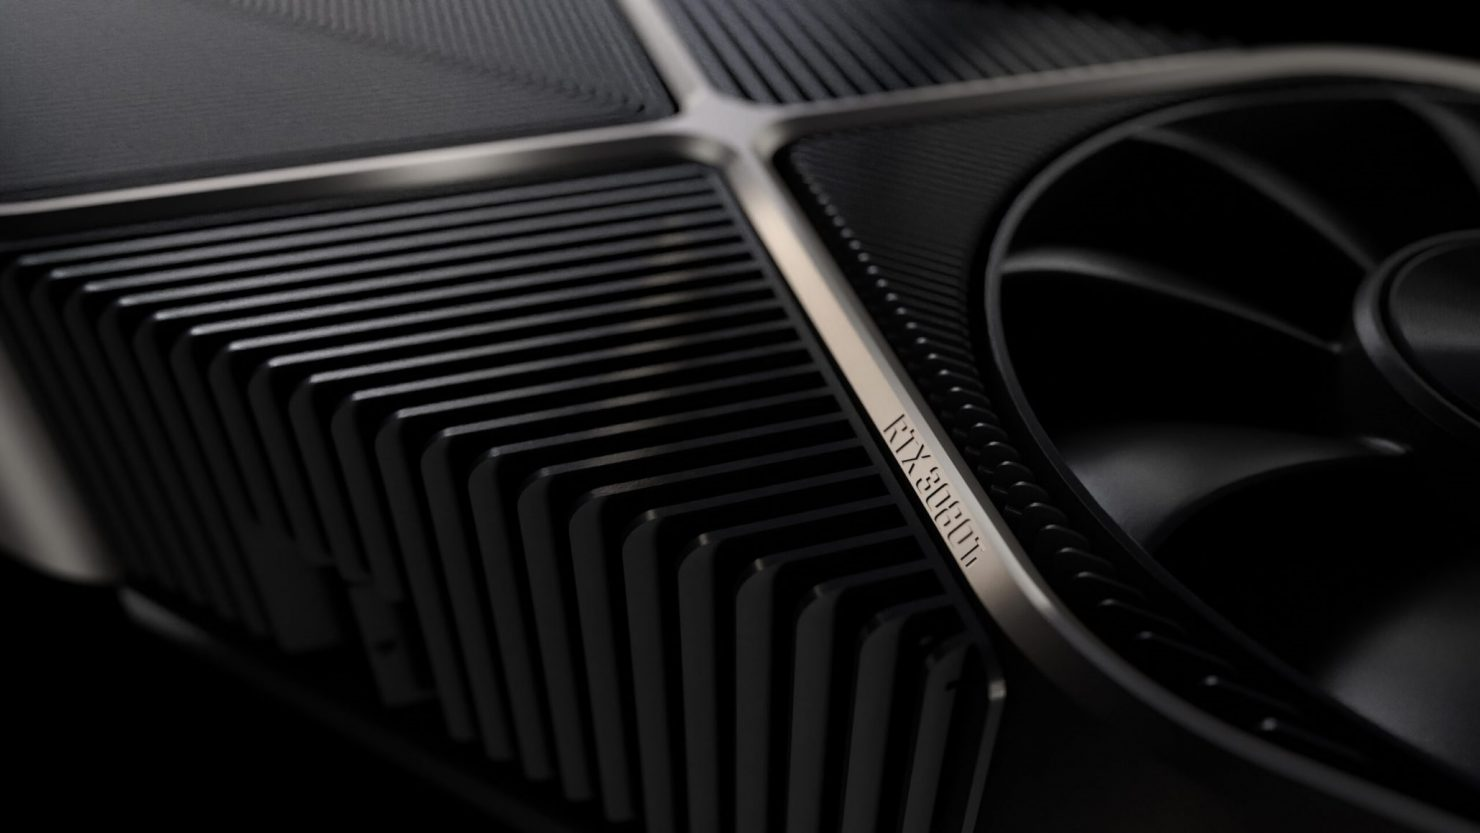 nvidia-geforce-rtx-3080-ti-delayed-again,-now-launching-alongside-rtx-3070-ti-in-june